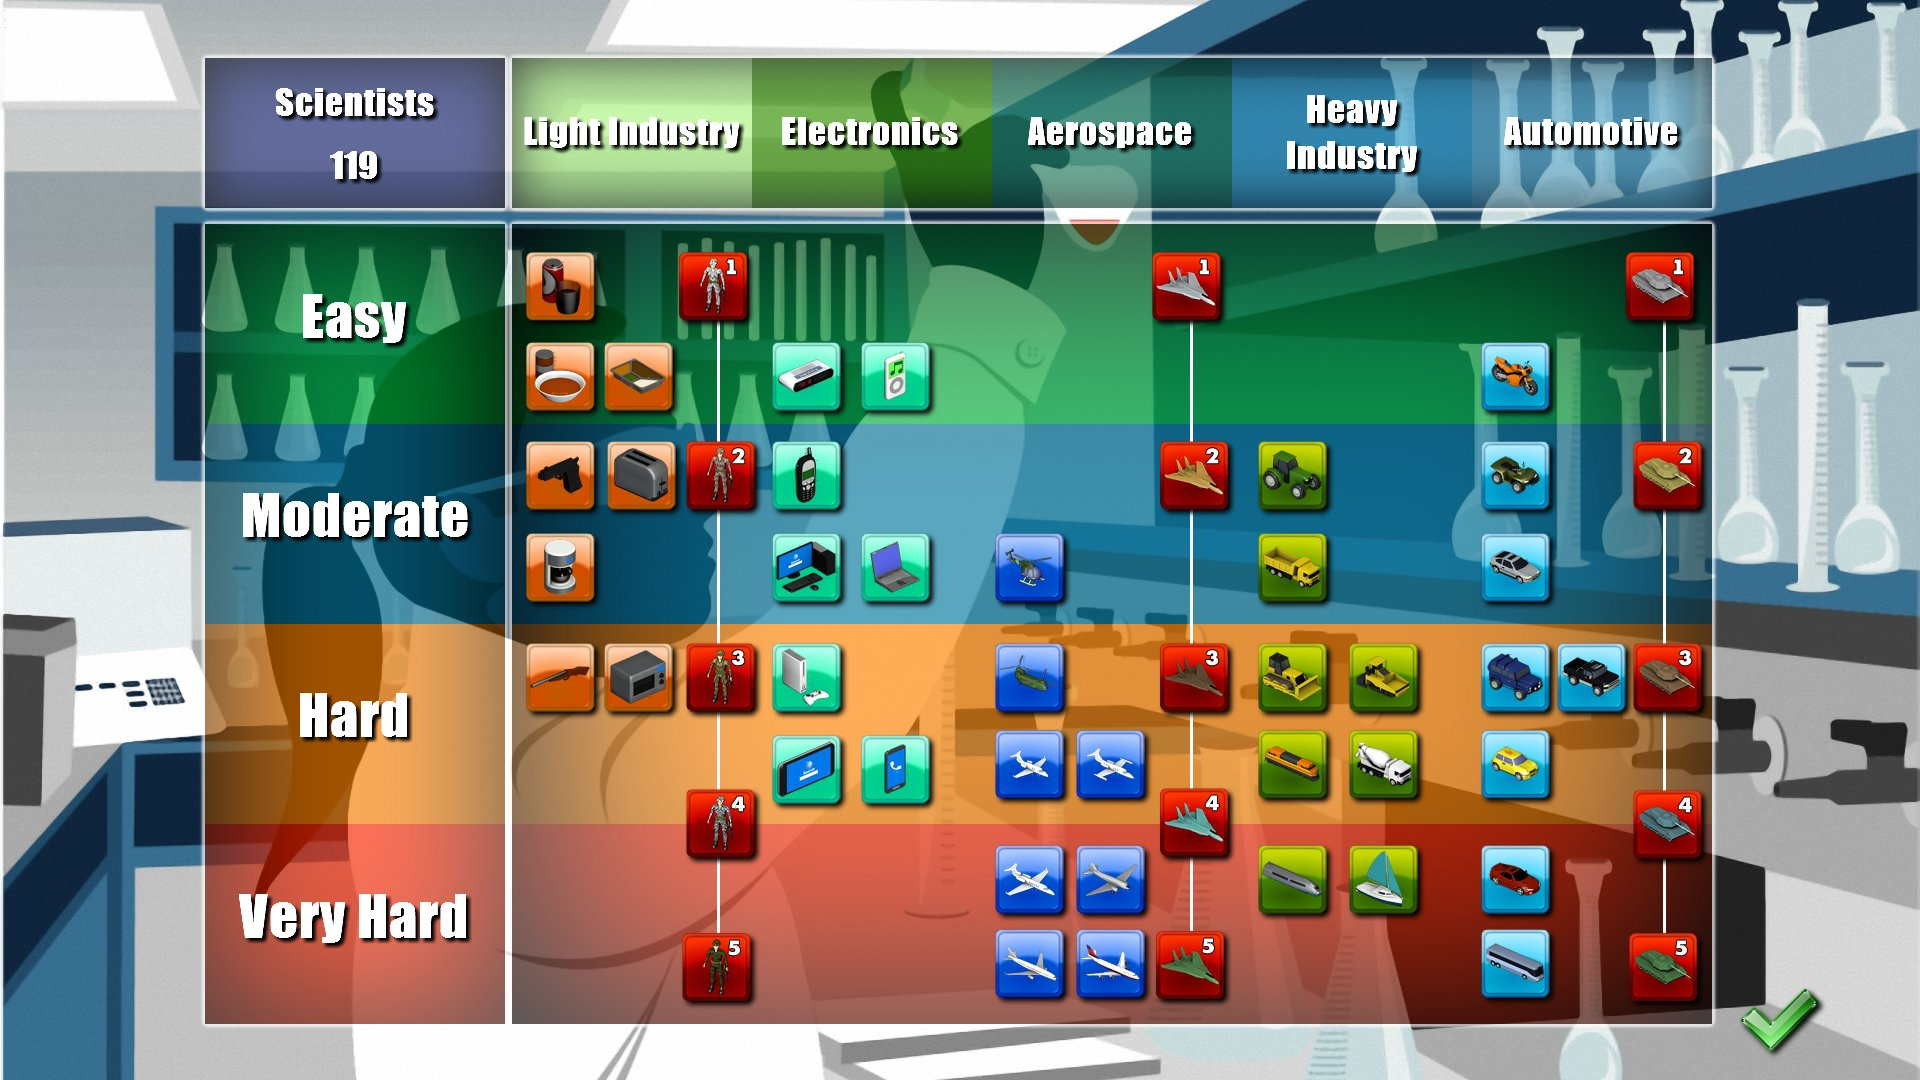 megacity software Megacity 181 free download ♦ going to make the hours melt away 9/10 - 148apps ♦ ♦ top 5 mobile games of 2012 - best apps and games on droid informer.